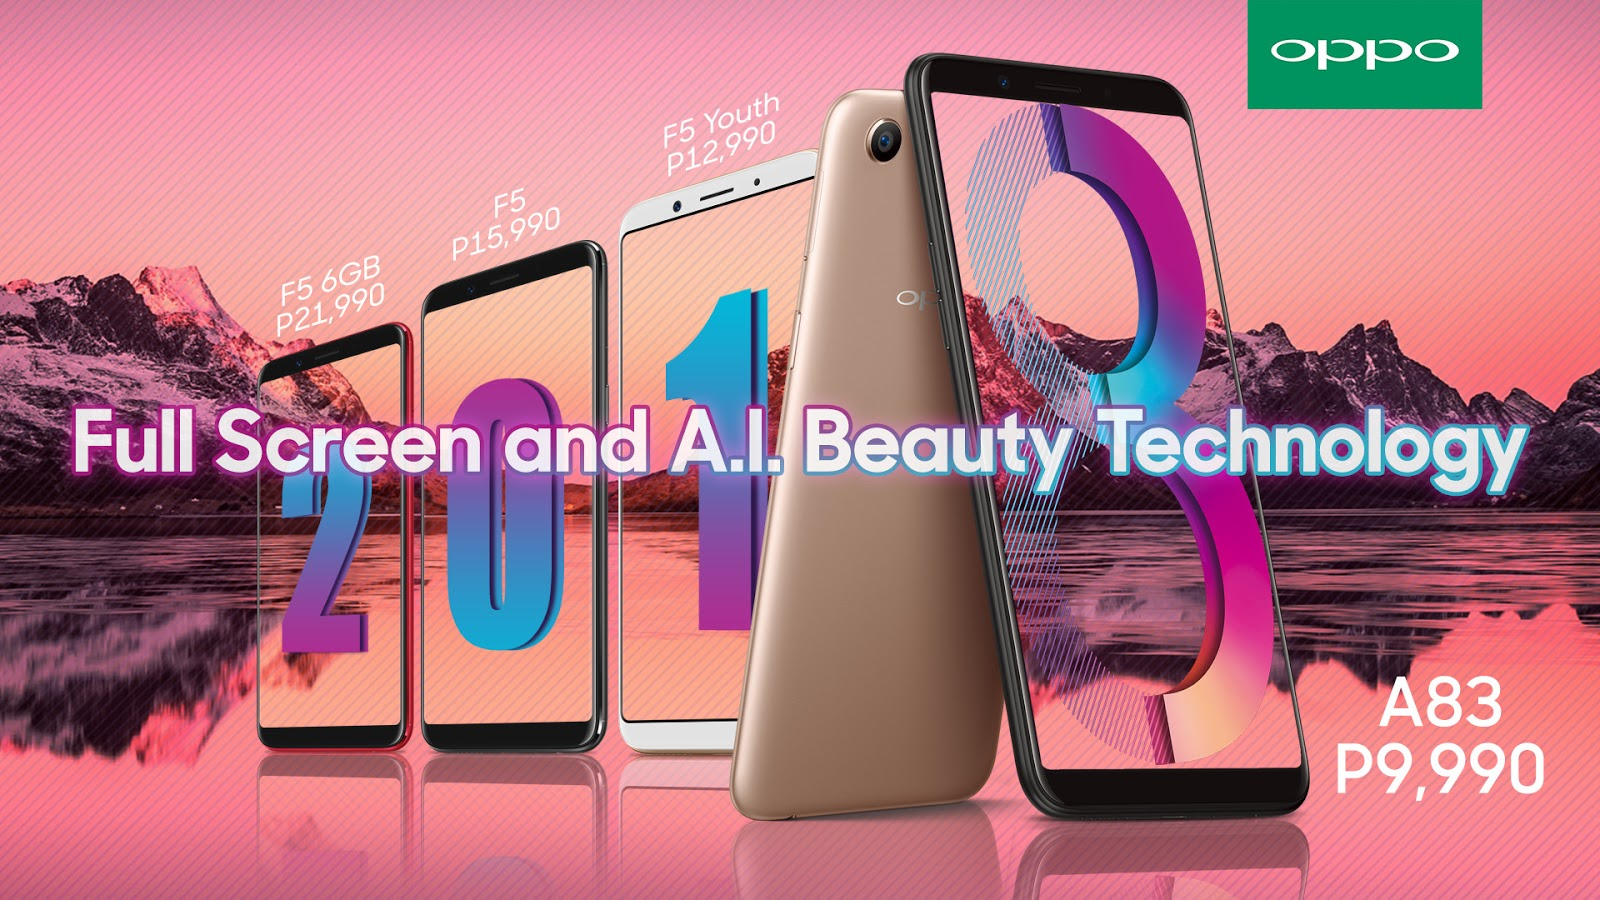 OPPO A83: the best value smartphone at 0% interest rate | Mac's IT Trend